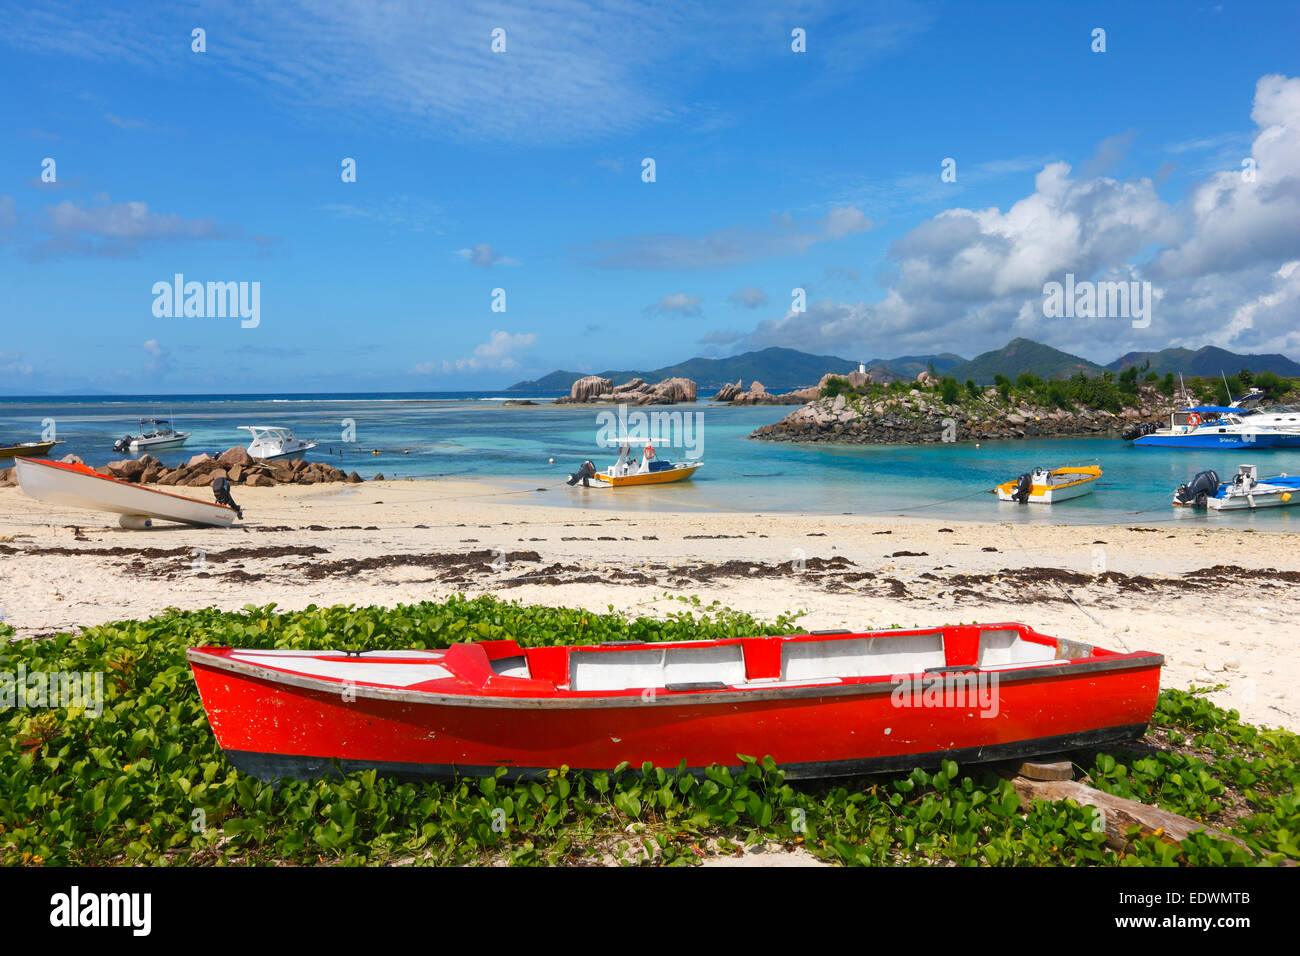 Red boat on the sand beach. Island  La Digue, Seychelles. Stock Photo